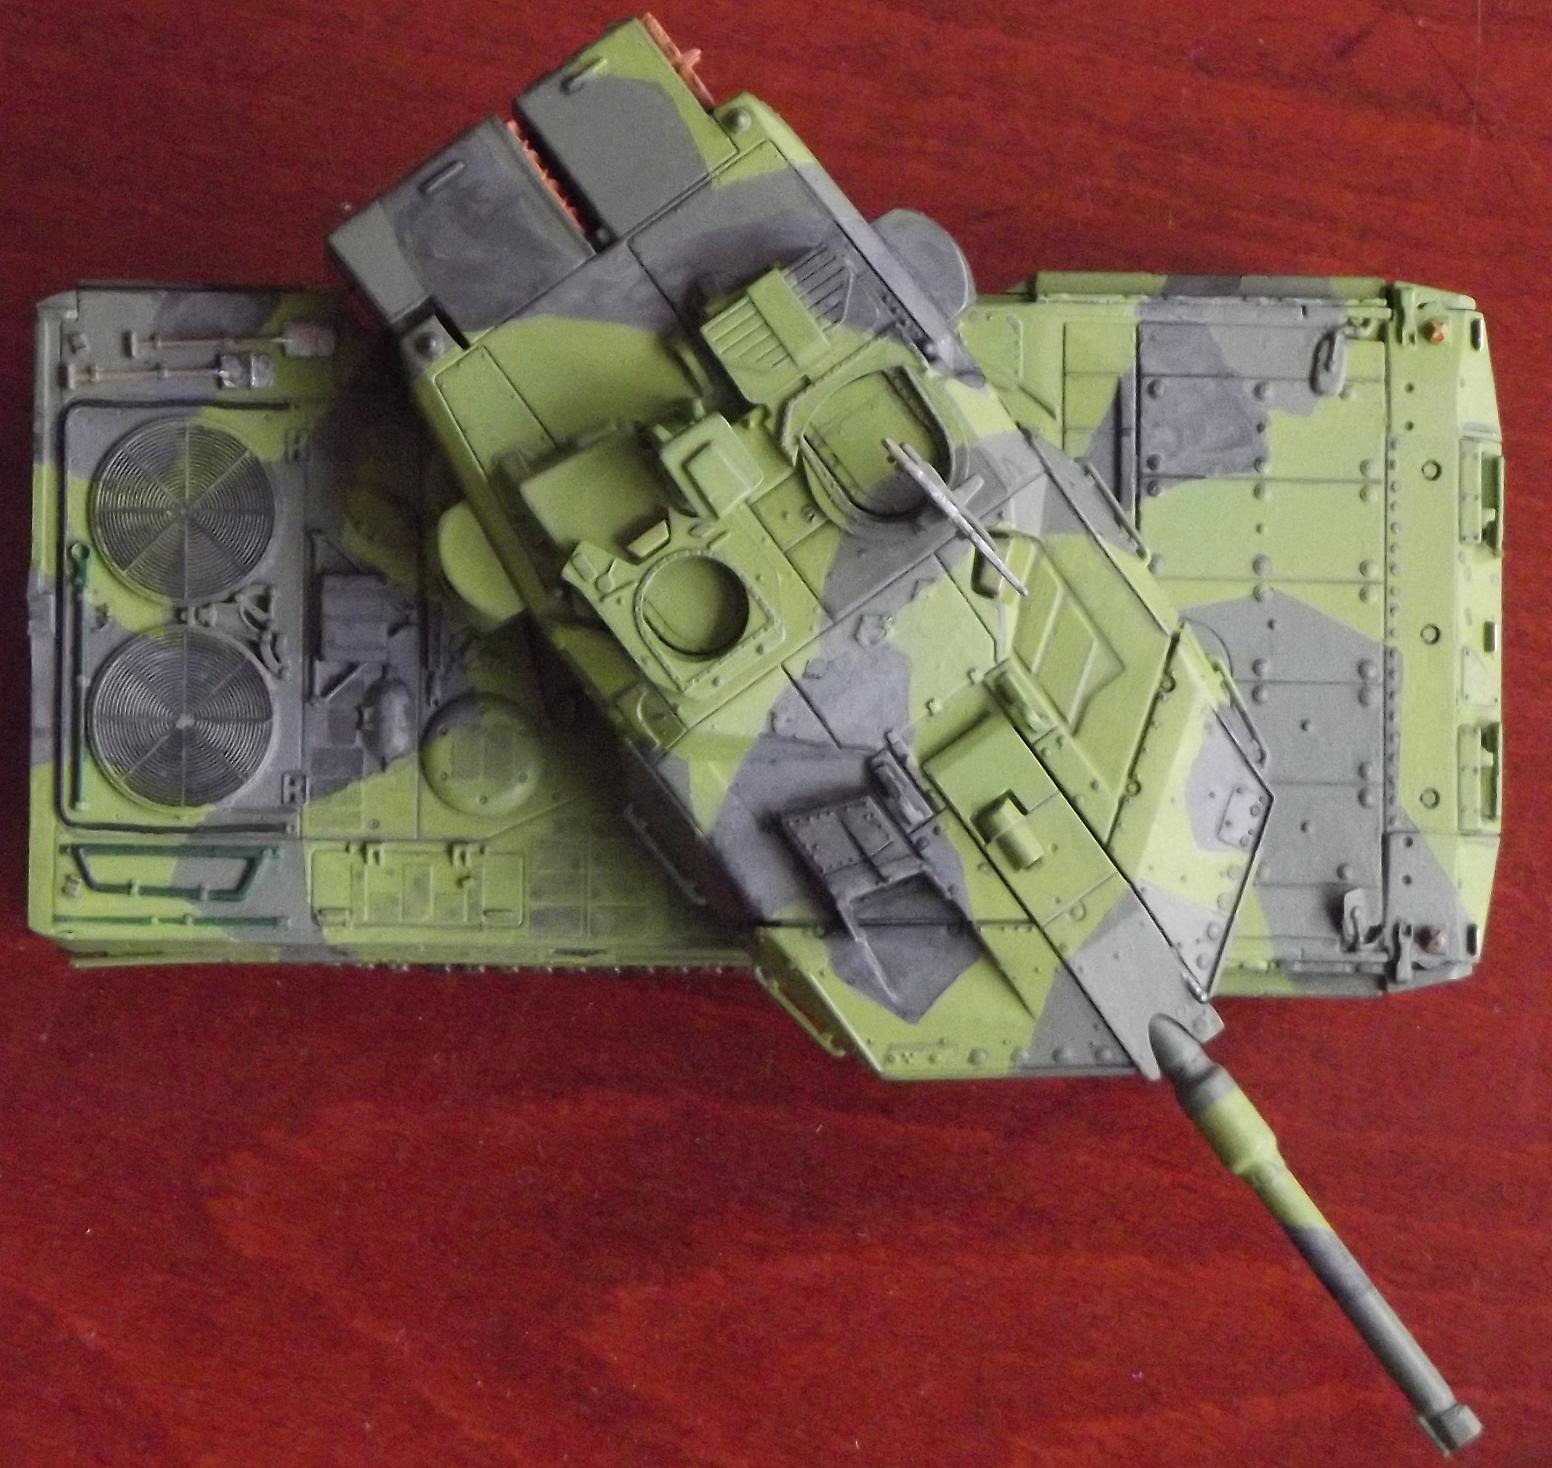 The biggest differences between the regular and swedish leopard ii